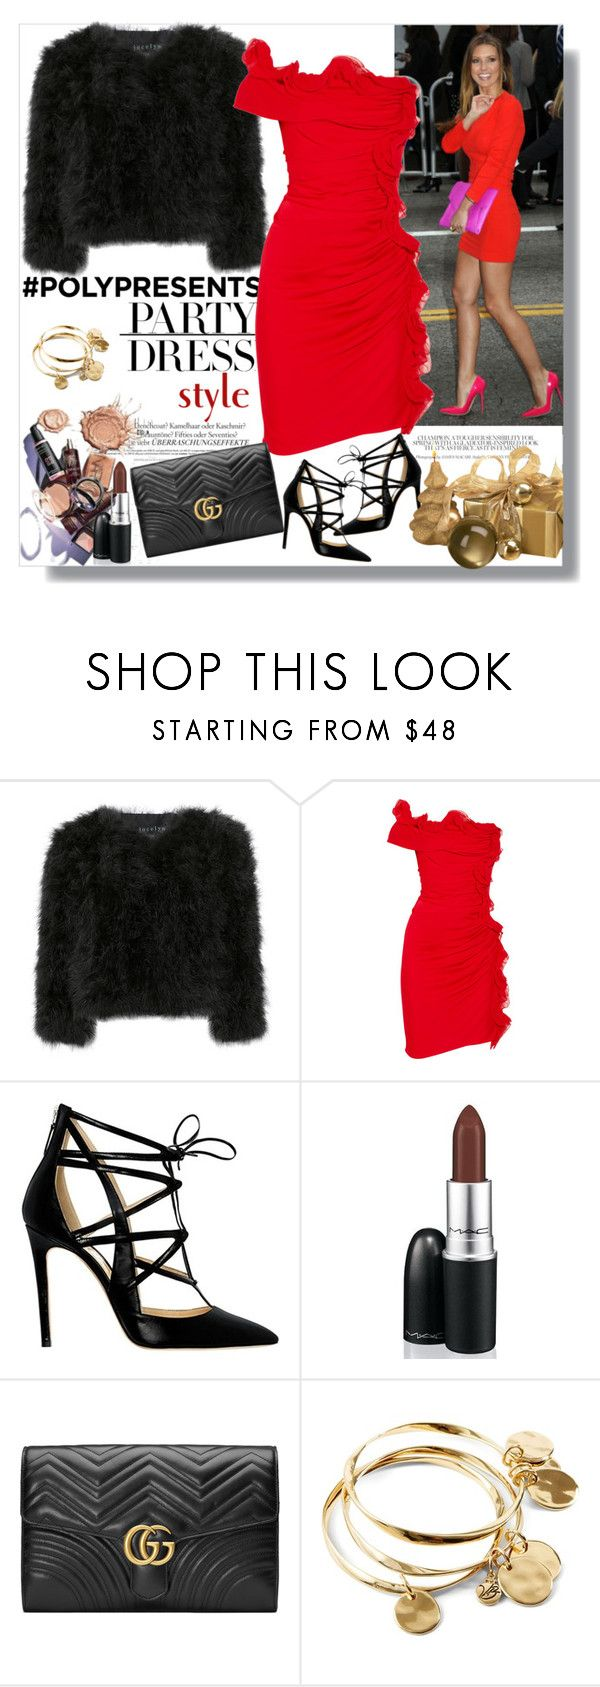 """""""Polypresents....Party Dresses"""" by teah507 ❤ liked on Polyvore featuring Melissa, Jocelyn, Catherine Malandrino, Alejandro Ingelmo, Mikasa, Gucci, Vera Bradley, contestentry and polyPresents"""